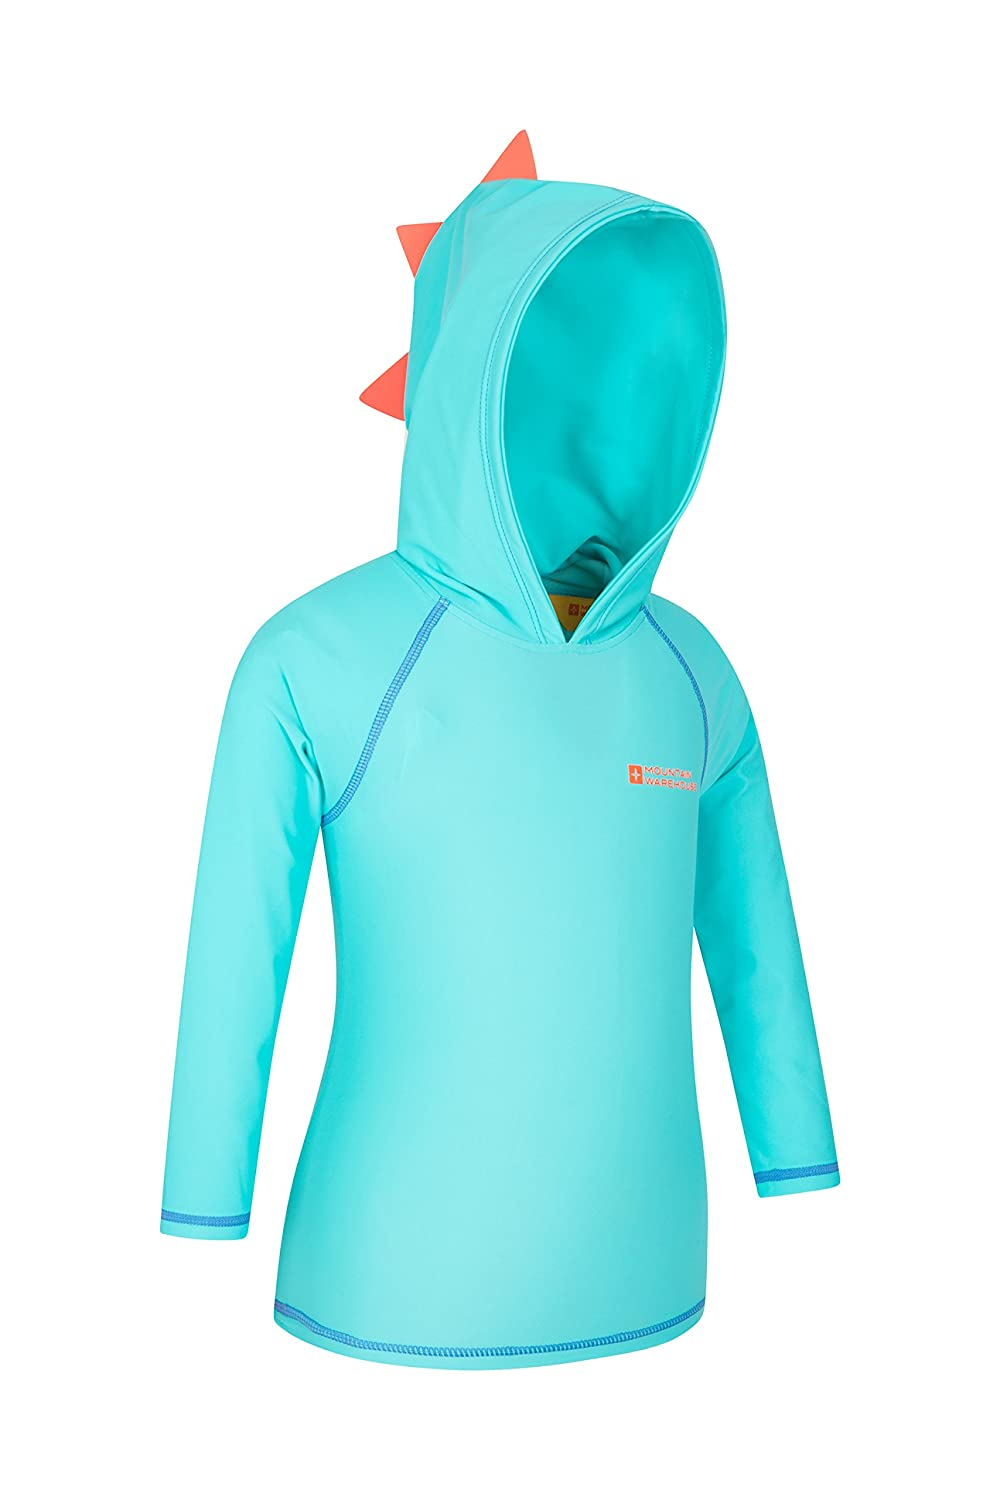 Mountain Warehouse Kids Rash Vest Hoodie - Childrens Summer Jacket Turquoise 6-12 months